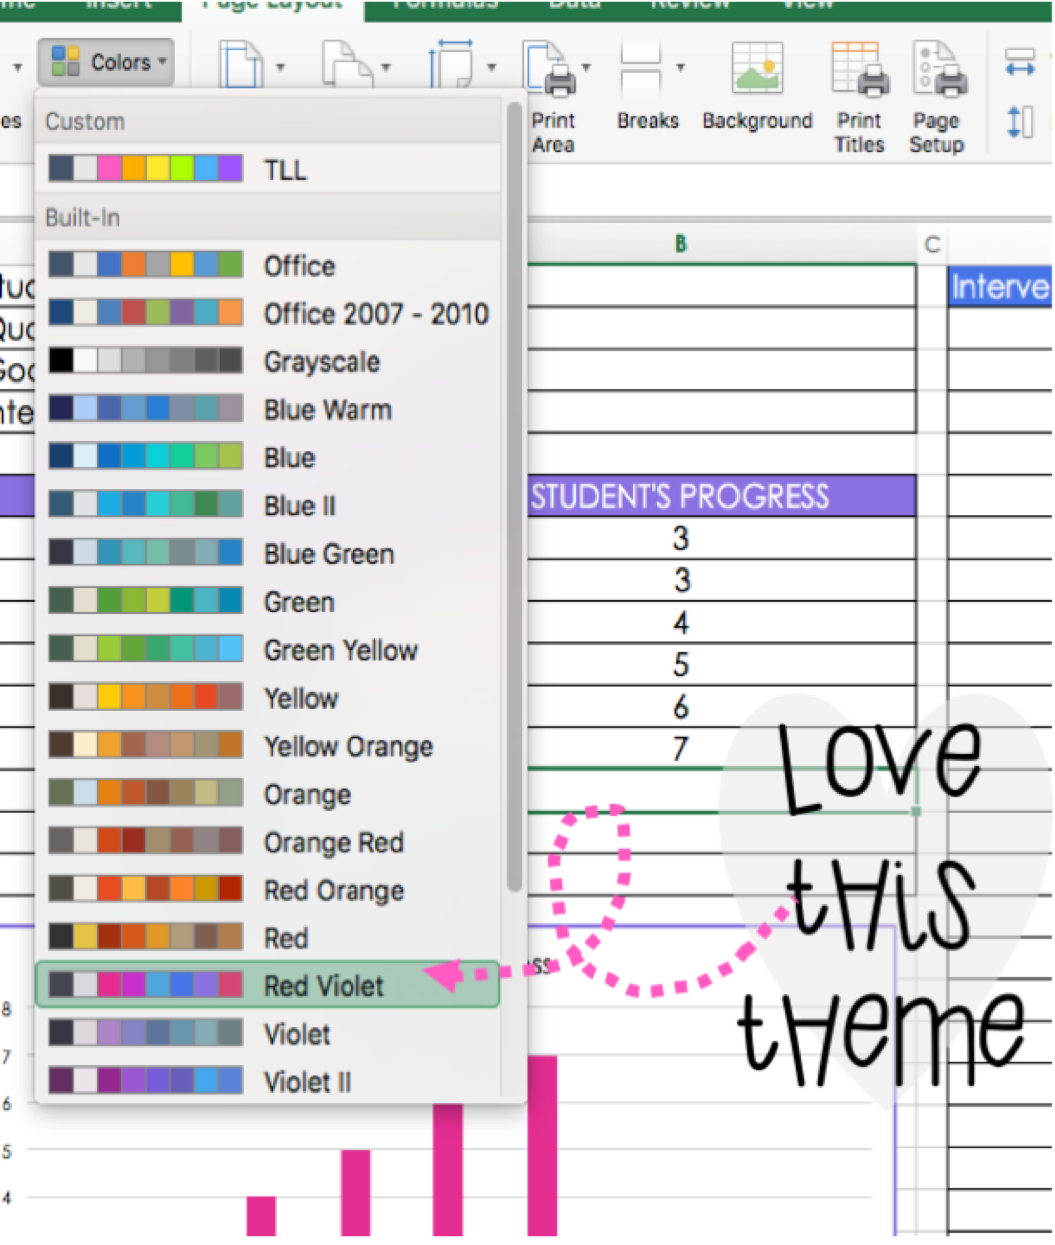 customizing color themes in powerpoint and excel